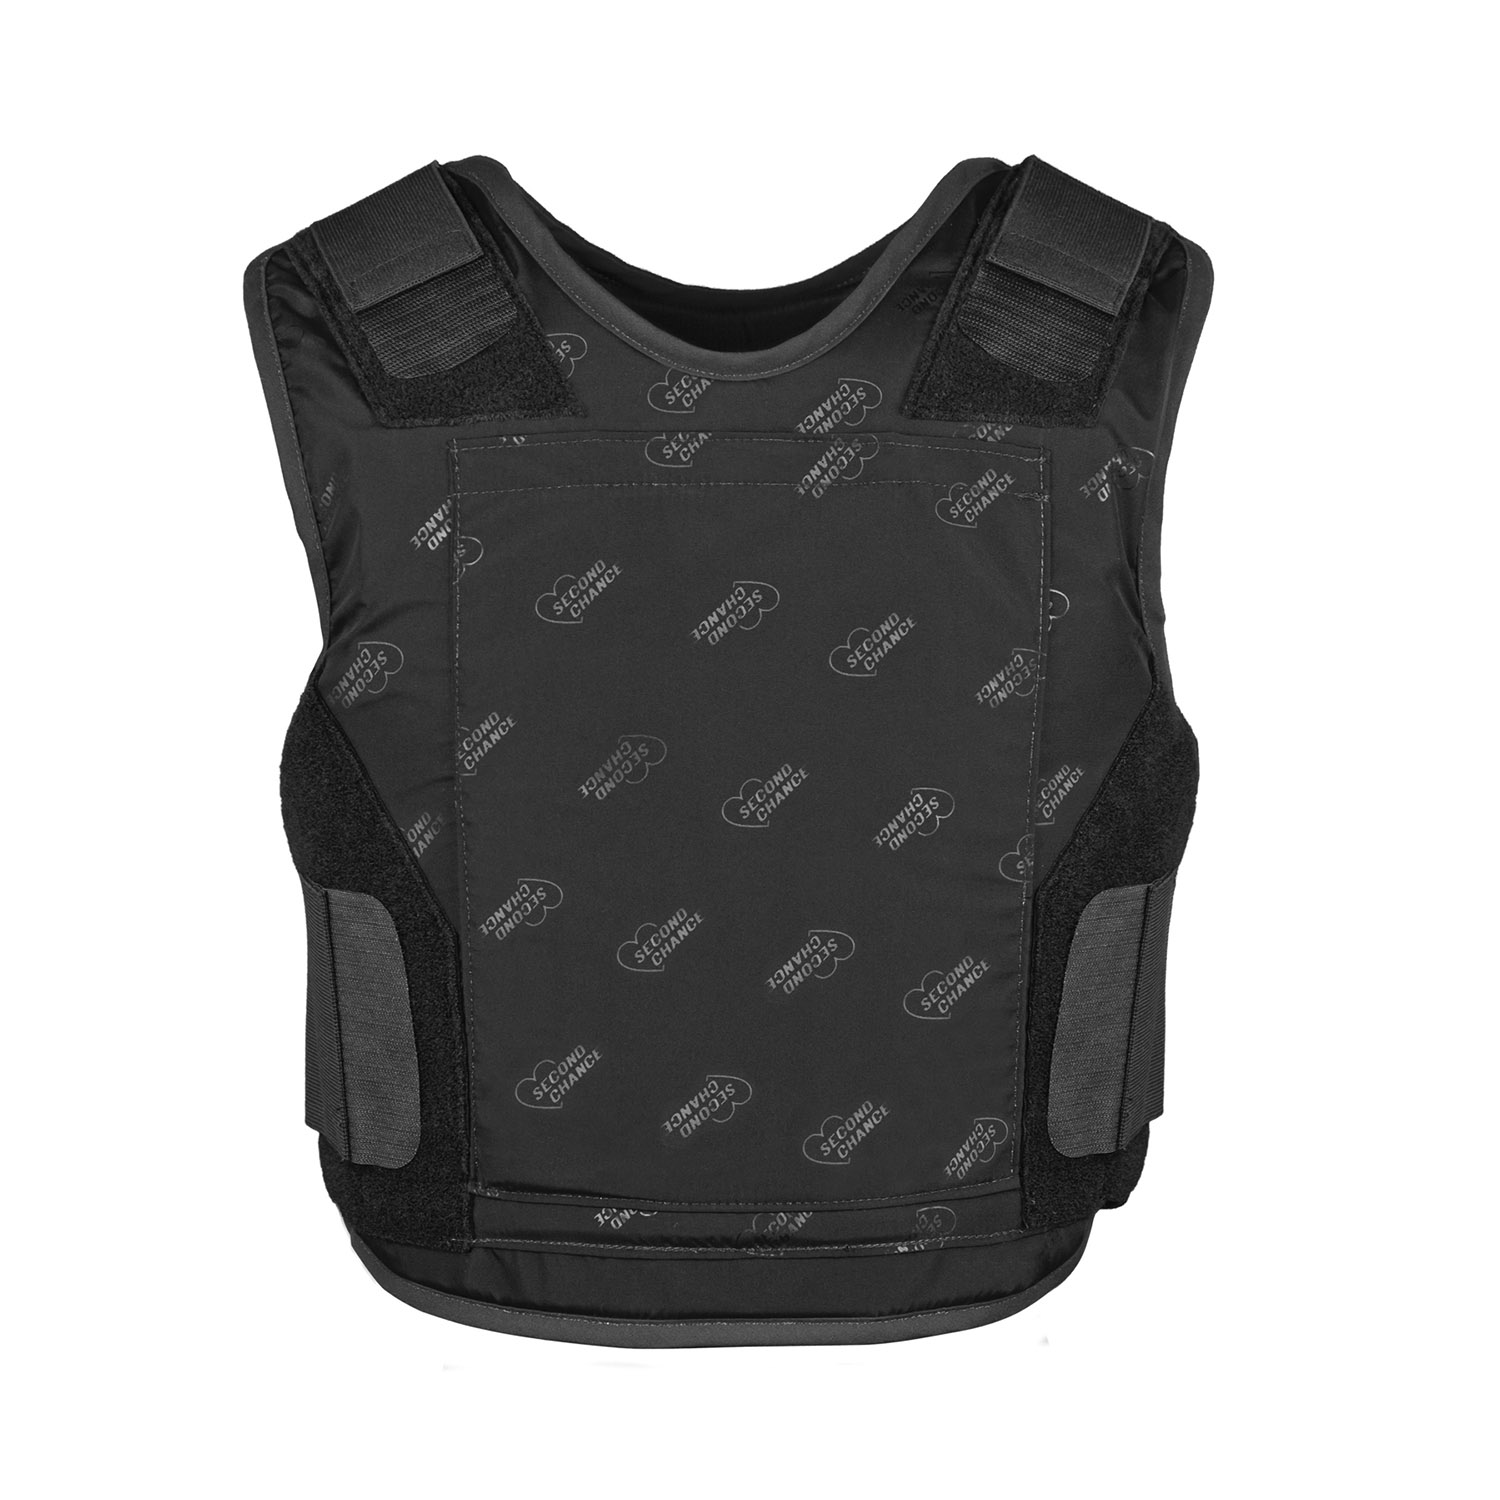 Second Chance Summit Level II Body Armor with APEX Carrier